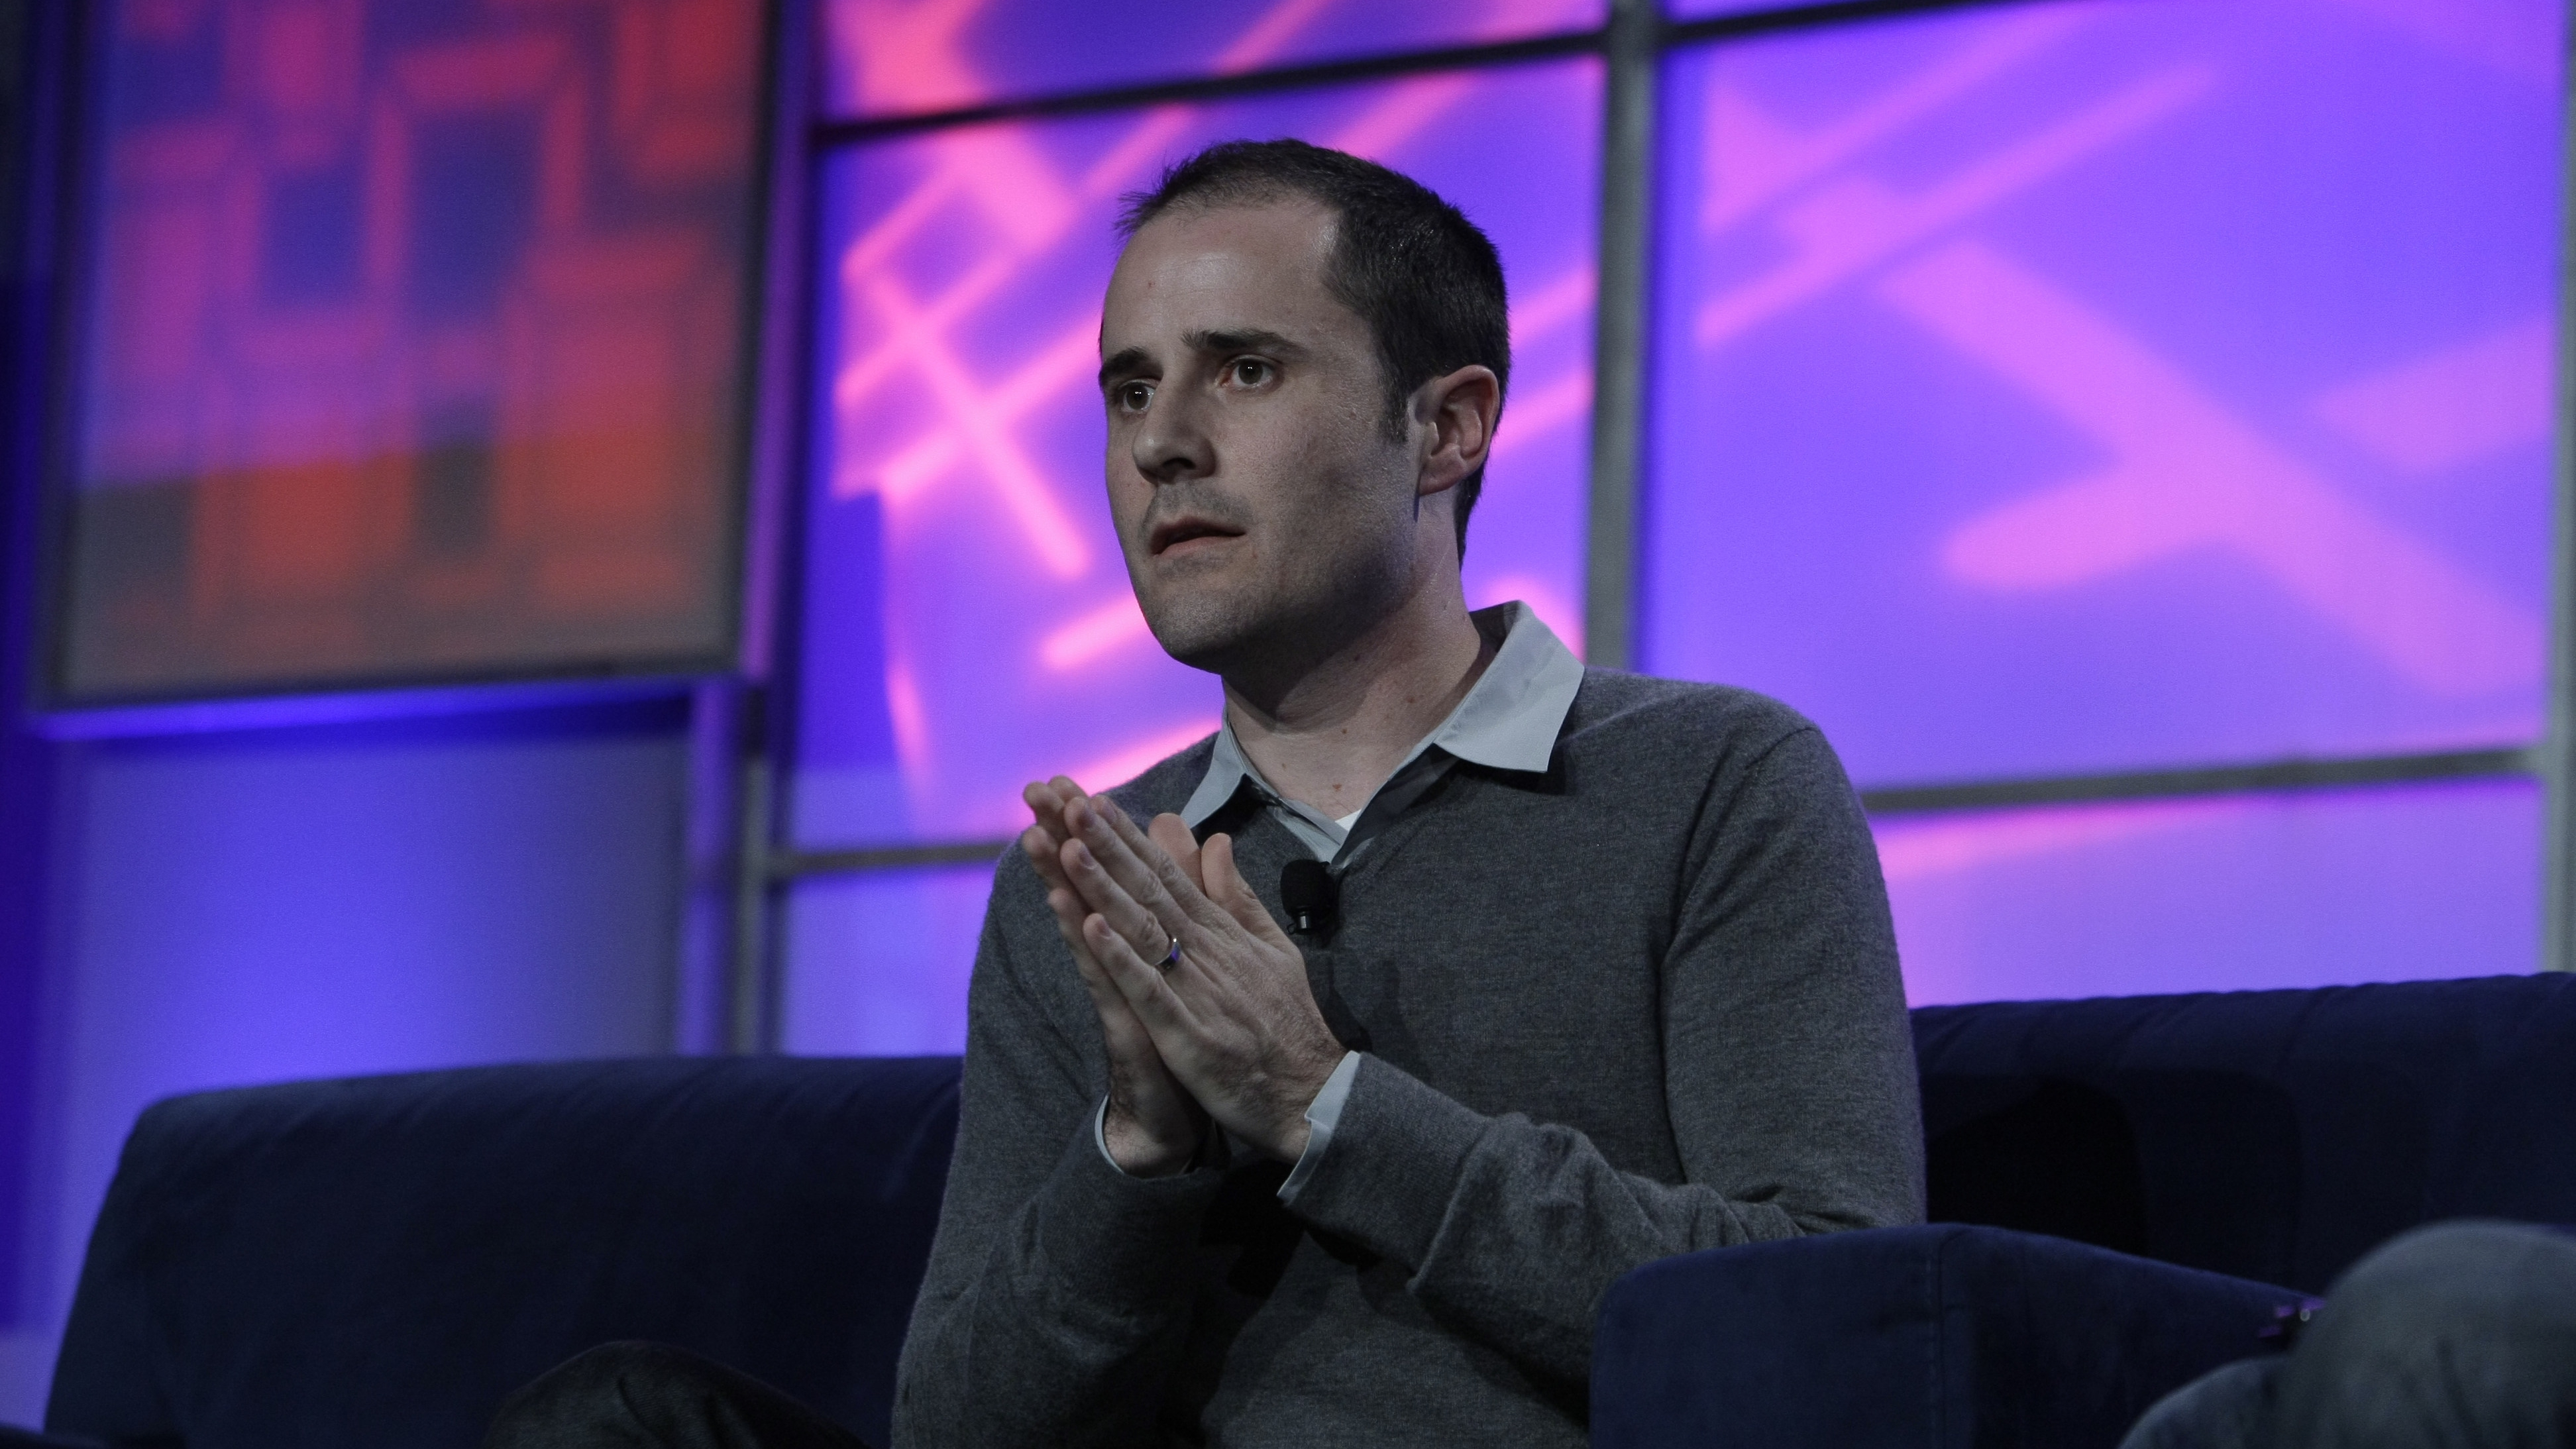 Twitter co-founder and former CEO Evan Williams speaks at the Web 2.0 Summit in San Francisco, Wednesday, Nov. 17, 2010. (AP Photo/Paul Sakuma)